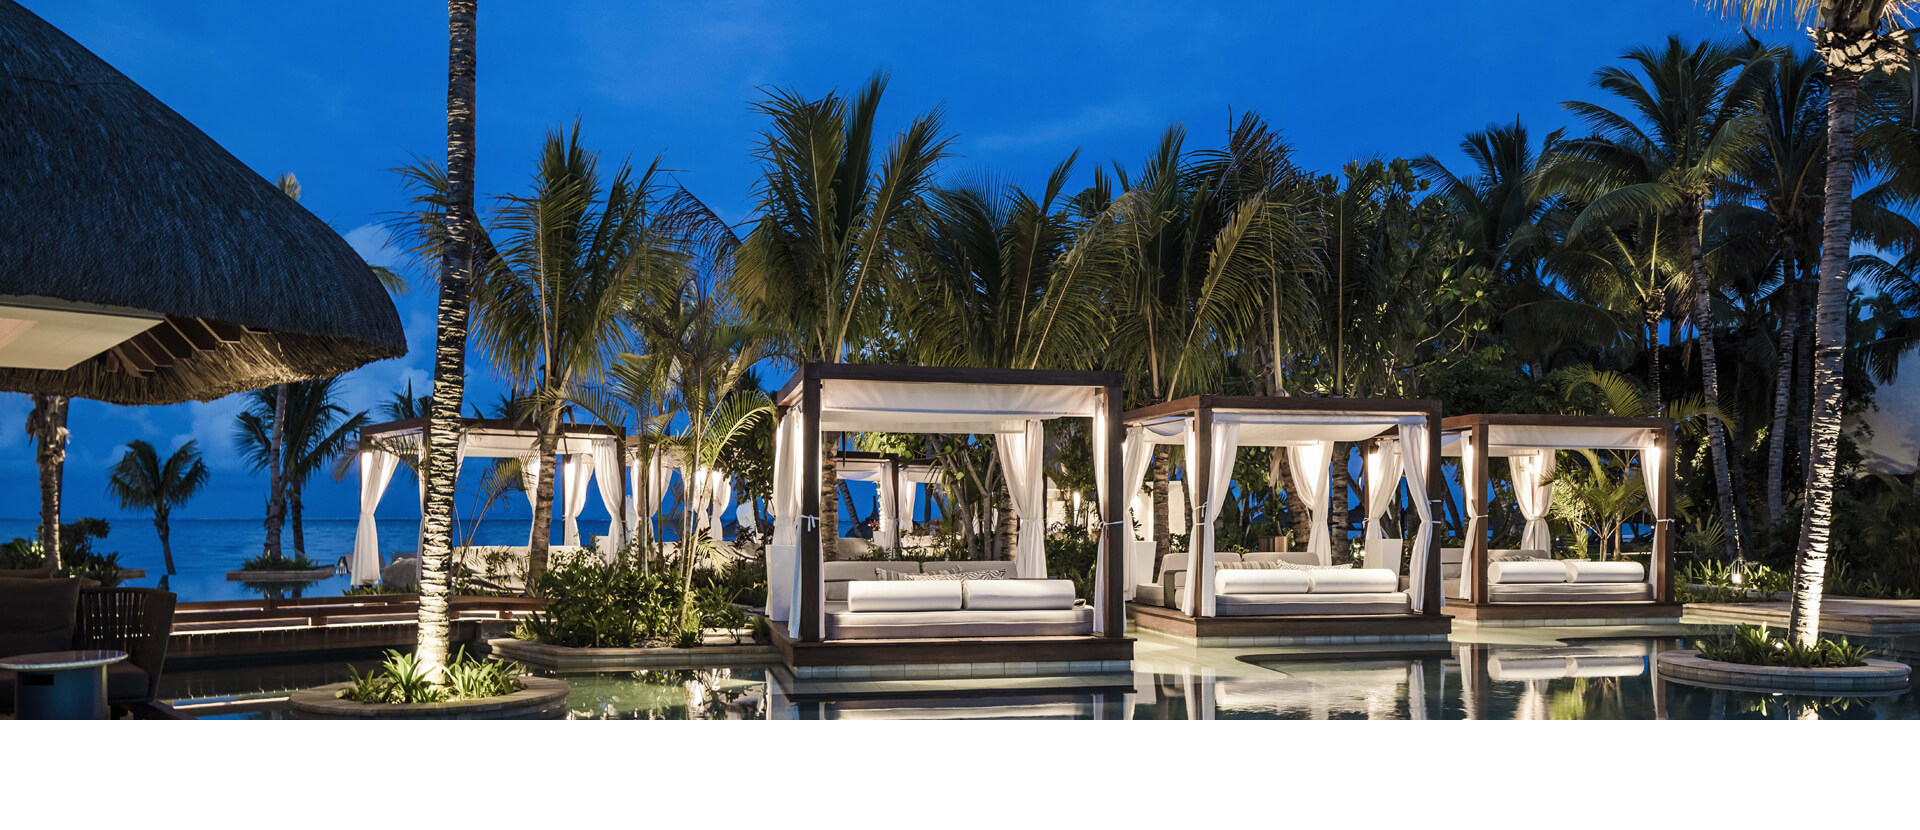 One & Only Hotels Destination Page